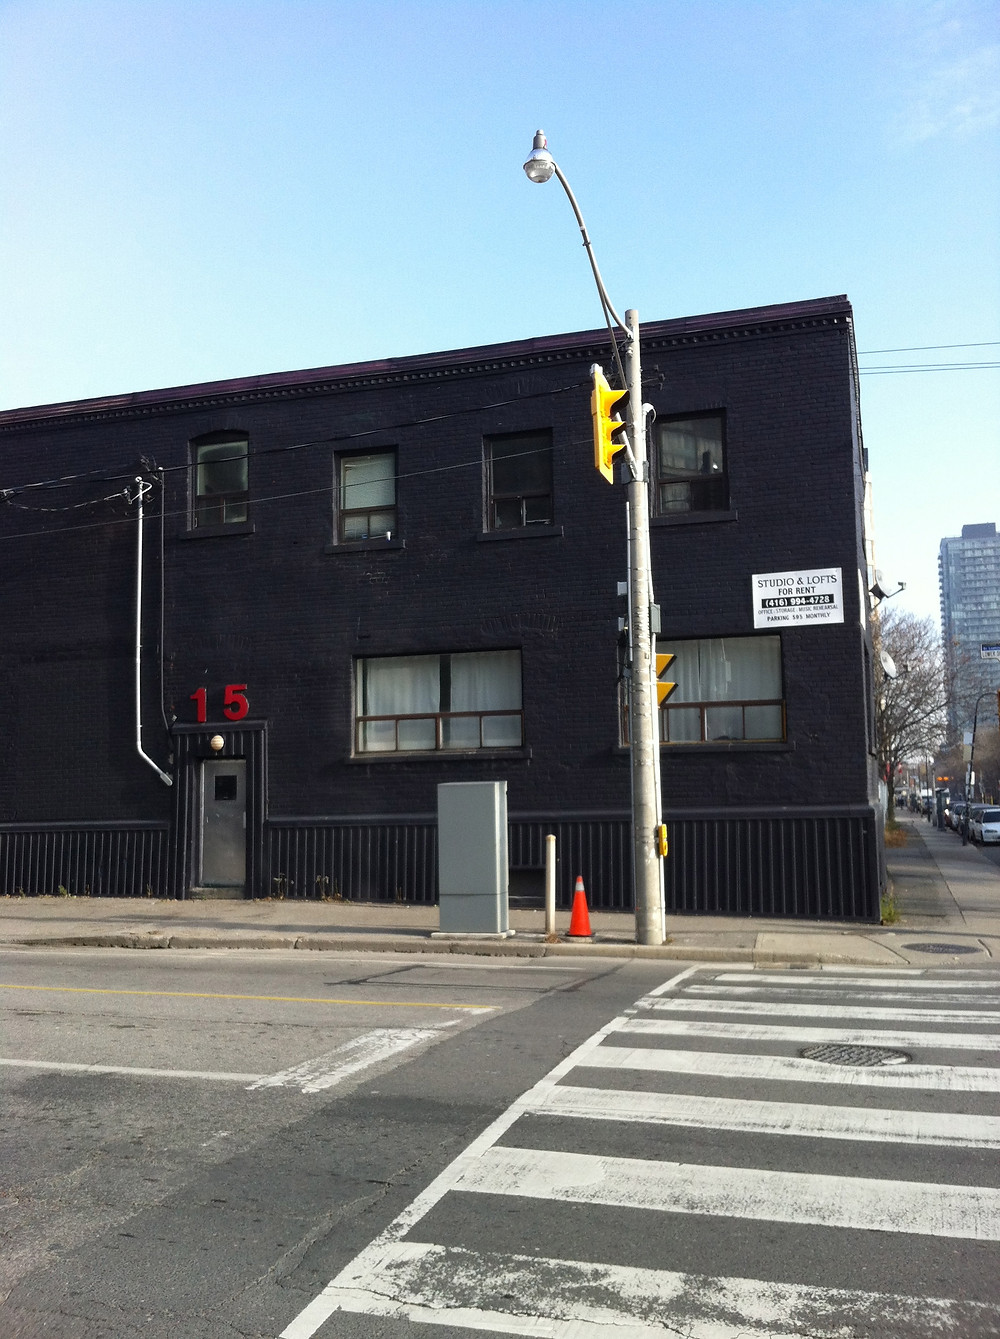 I moved to 15 Lower Sherbourne sometime in December 2011